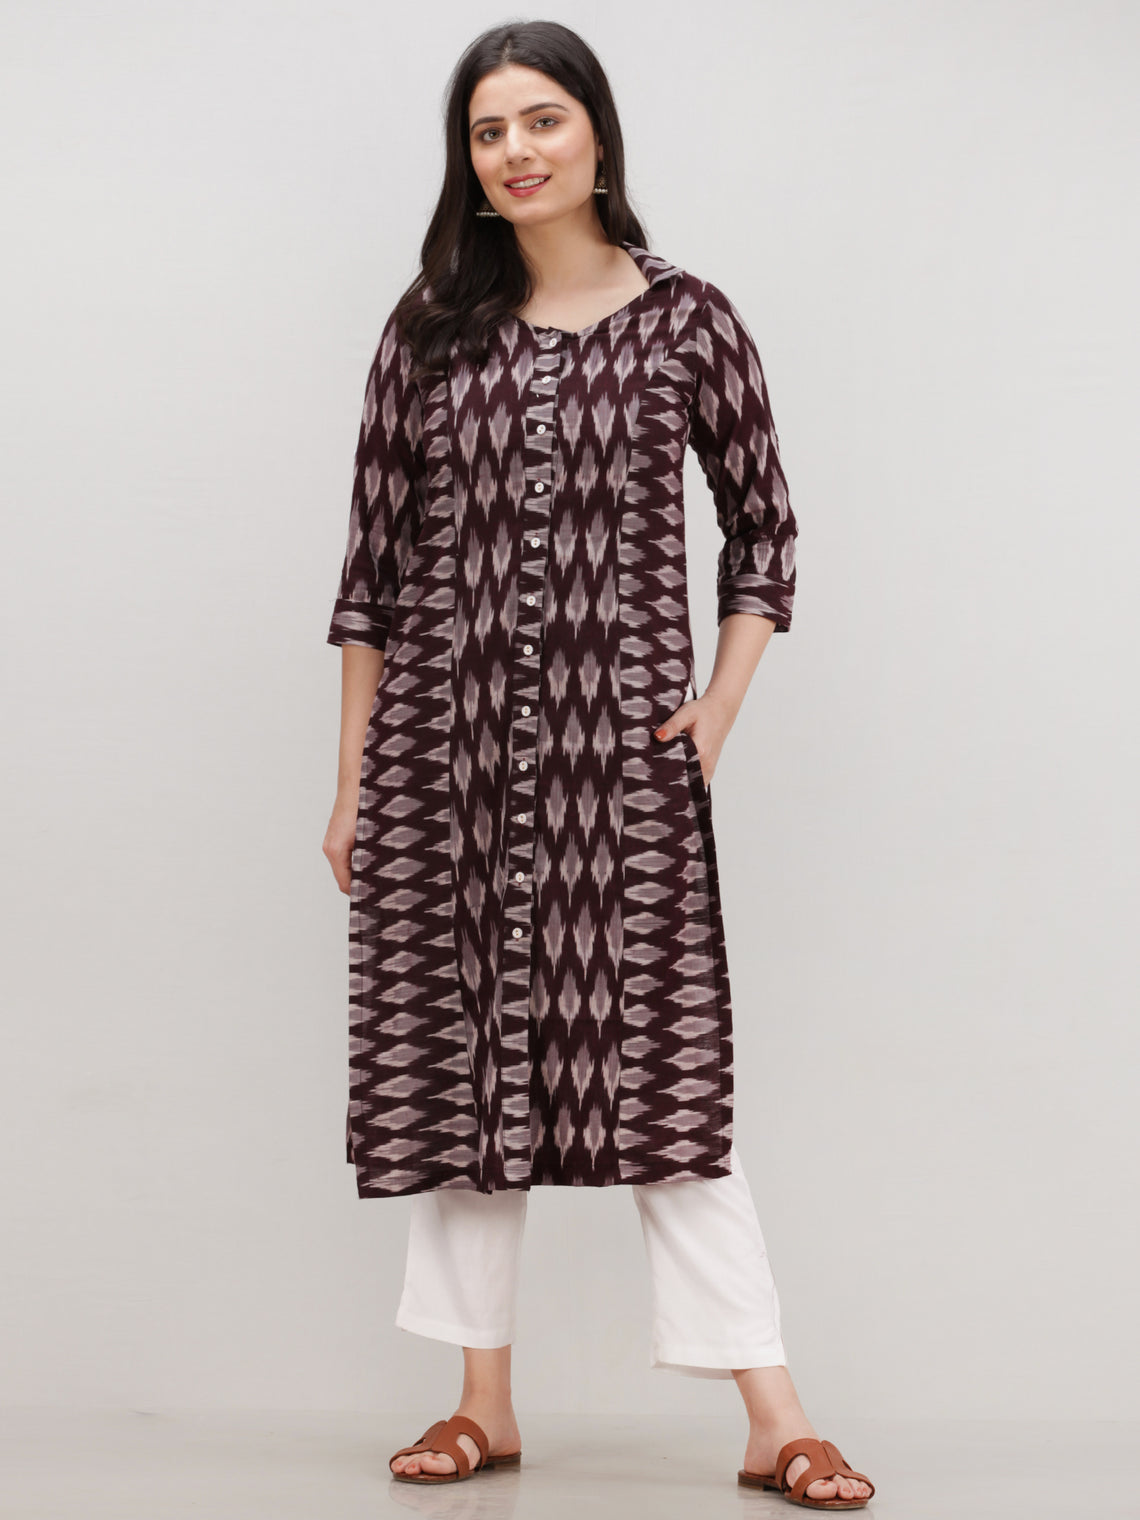 Tagai Sahat - Set of Ikat Kurta & Pants  - KS123A2433